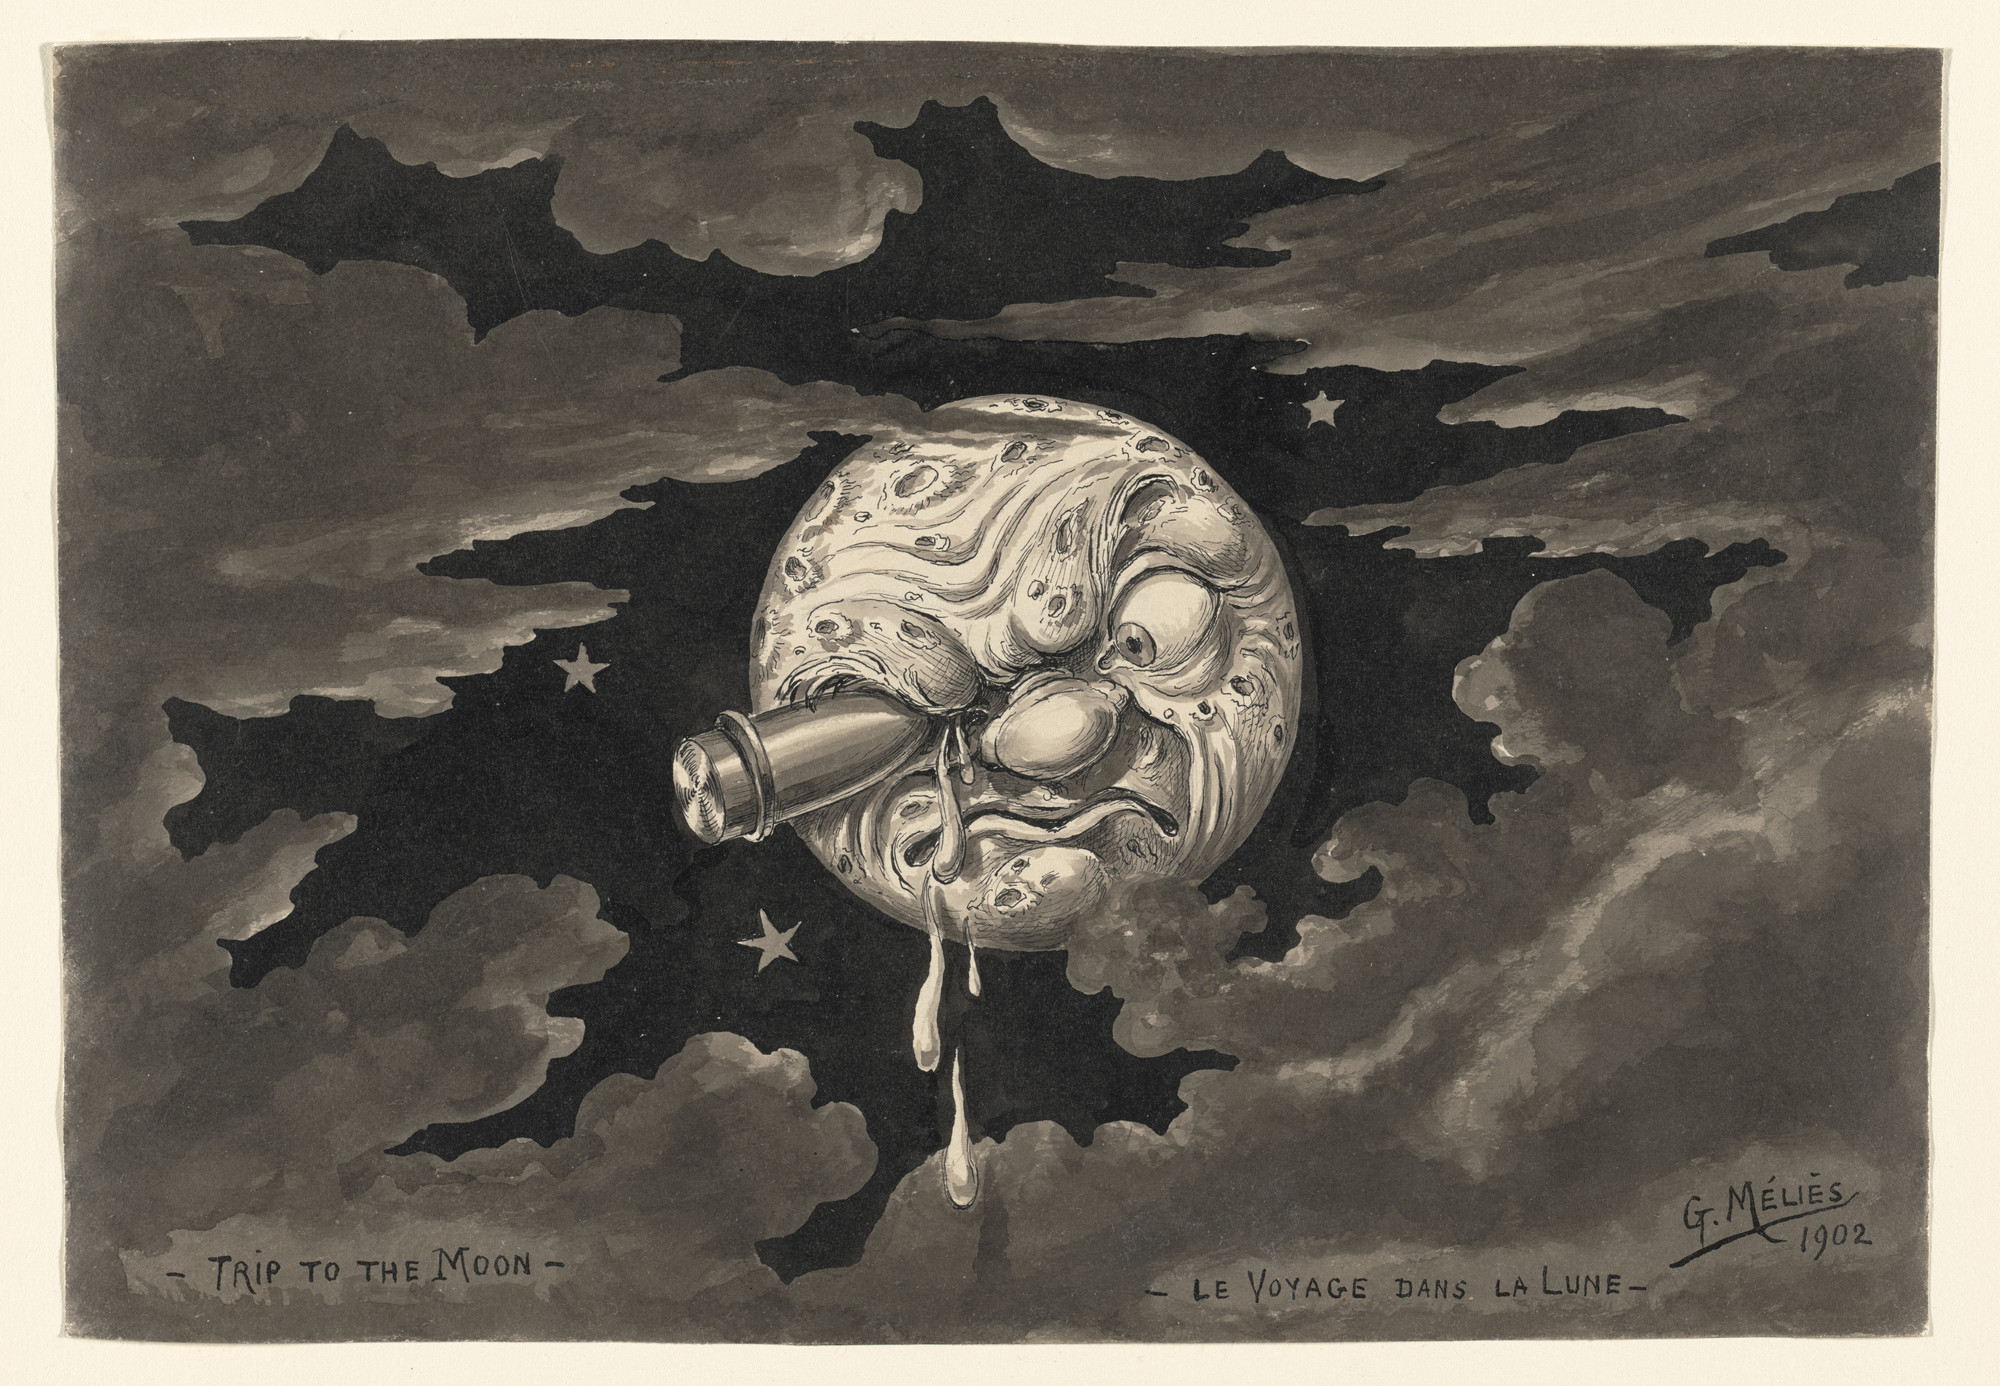 Georges Méliès. Untitled sketch for A Trip to the Moon. 1902